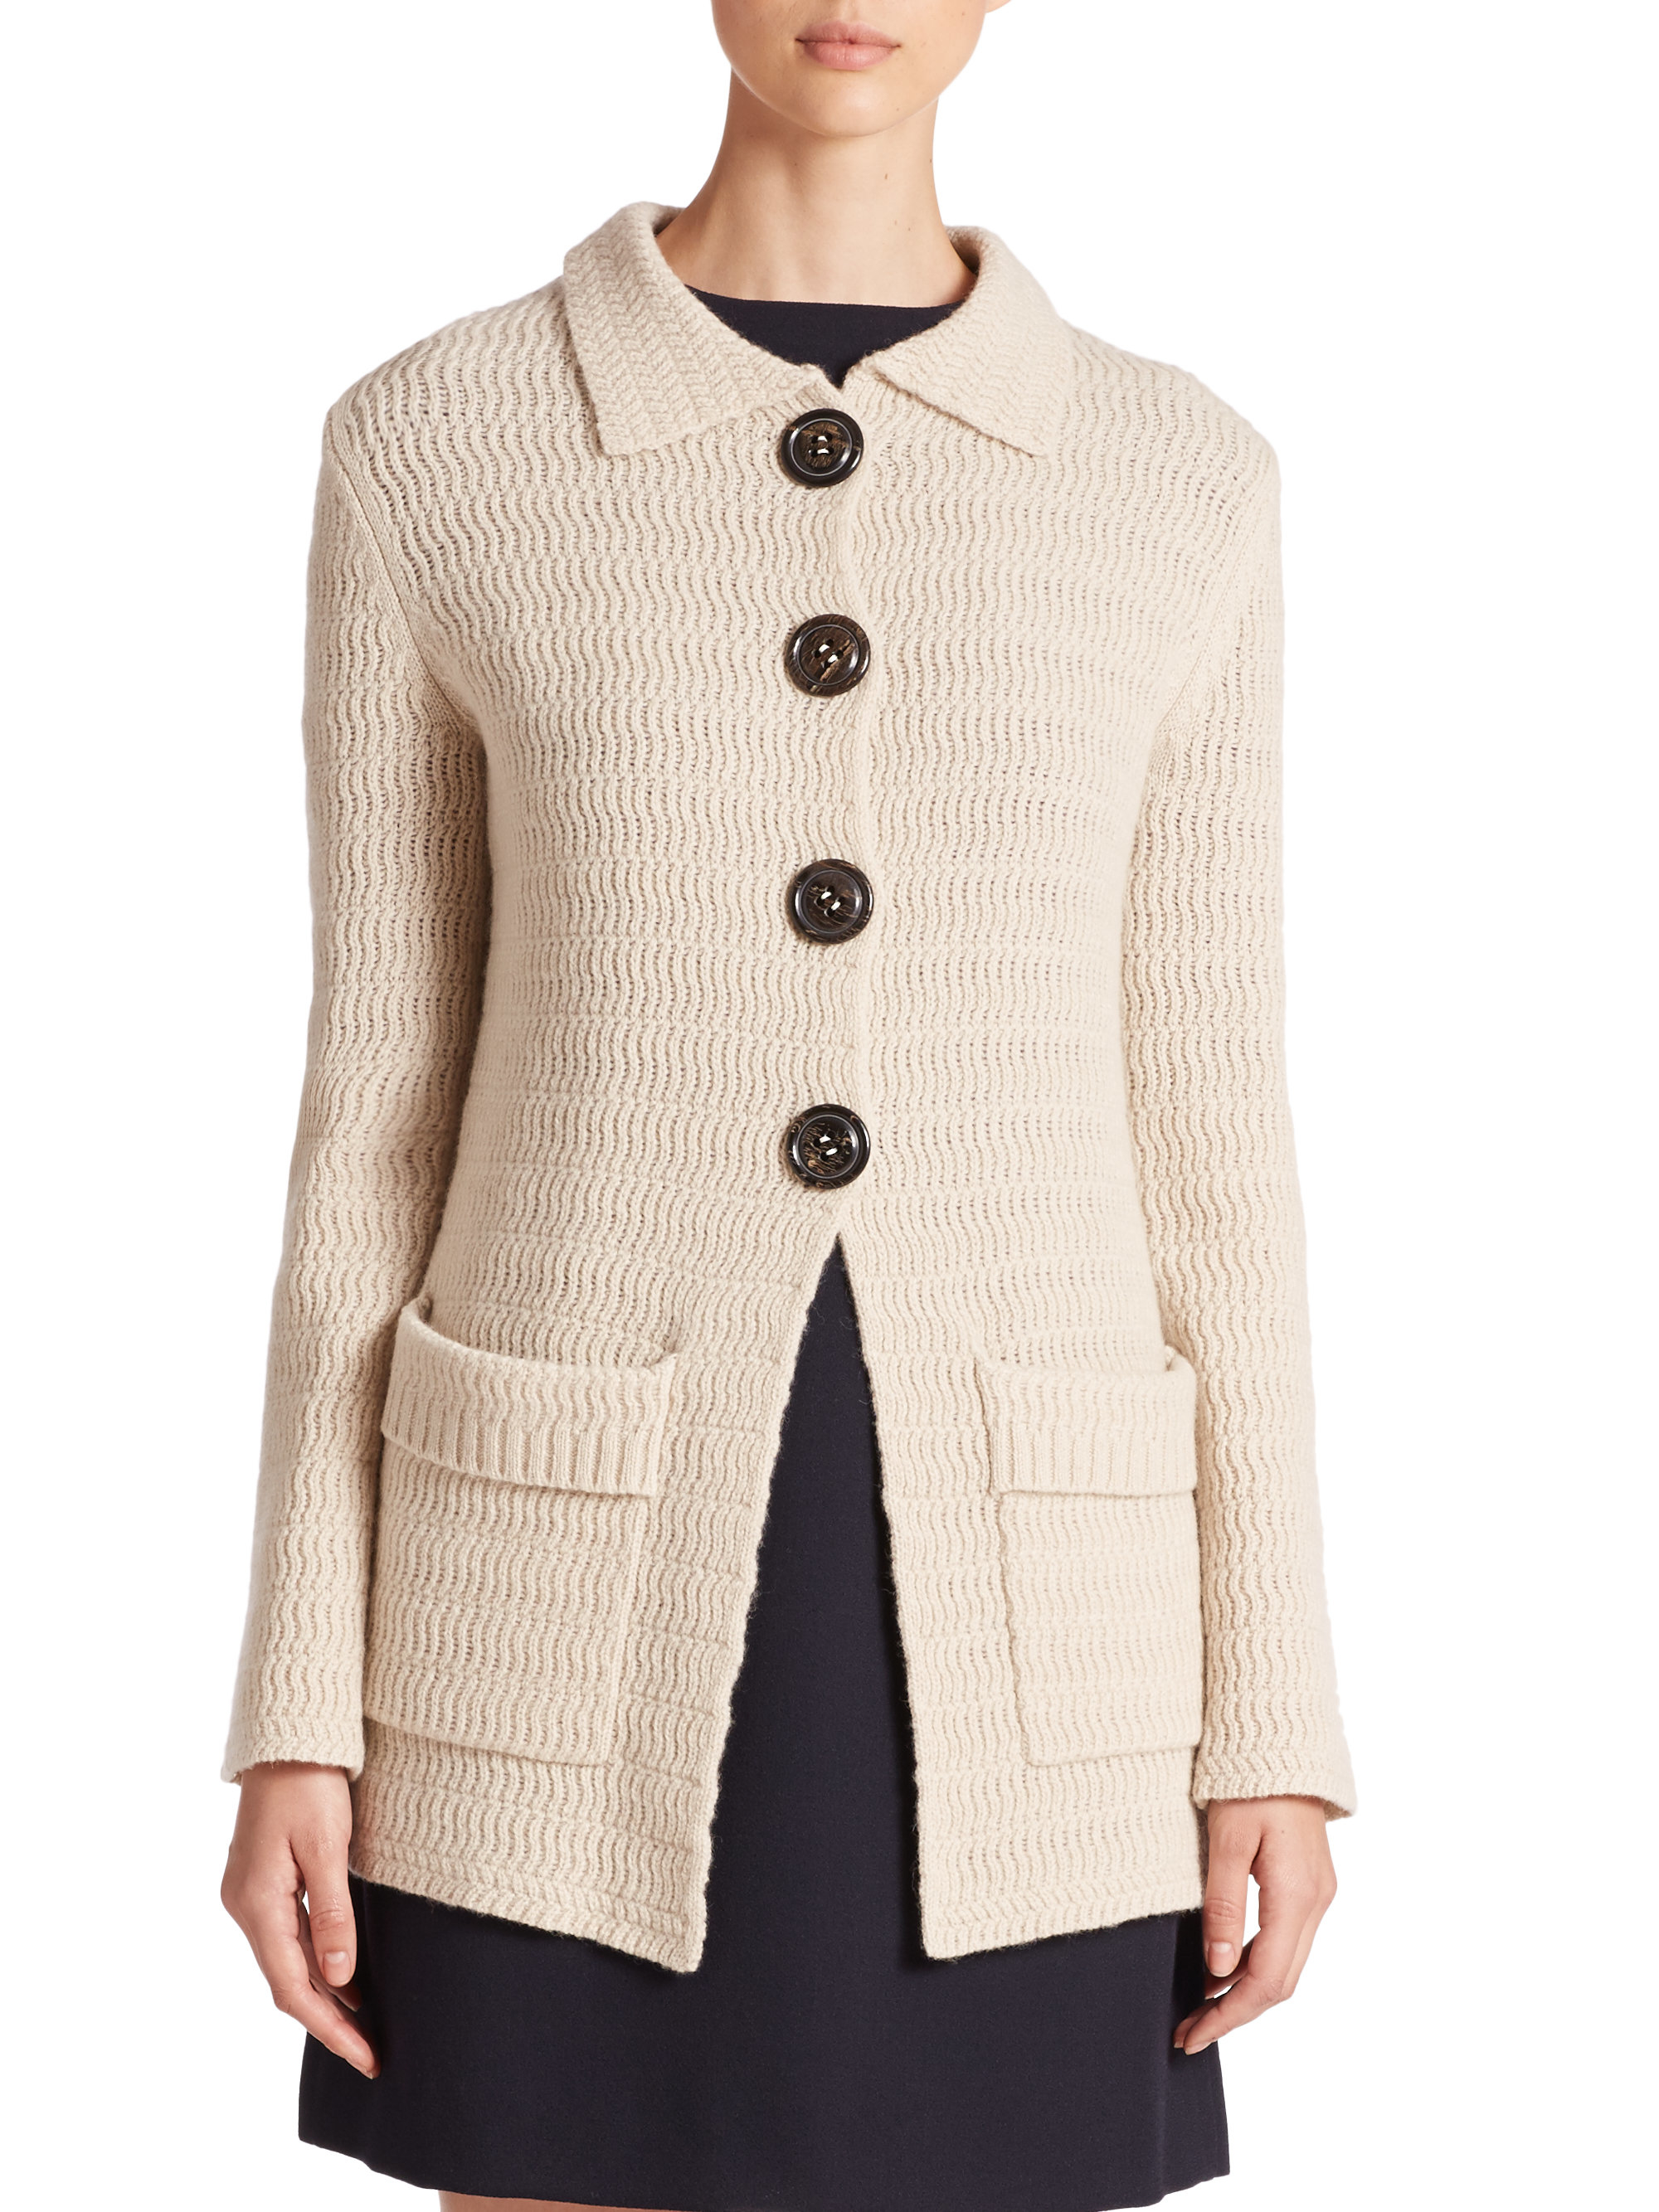 Wool Sweater Grey: Goat Blossom Wool Sweater Jacket In Natural